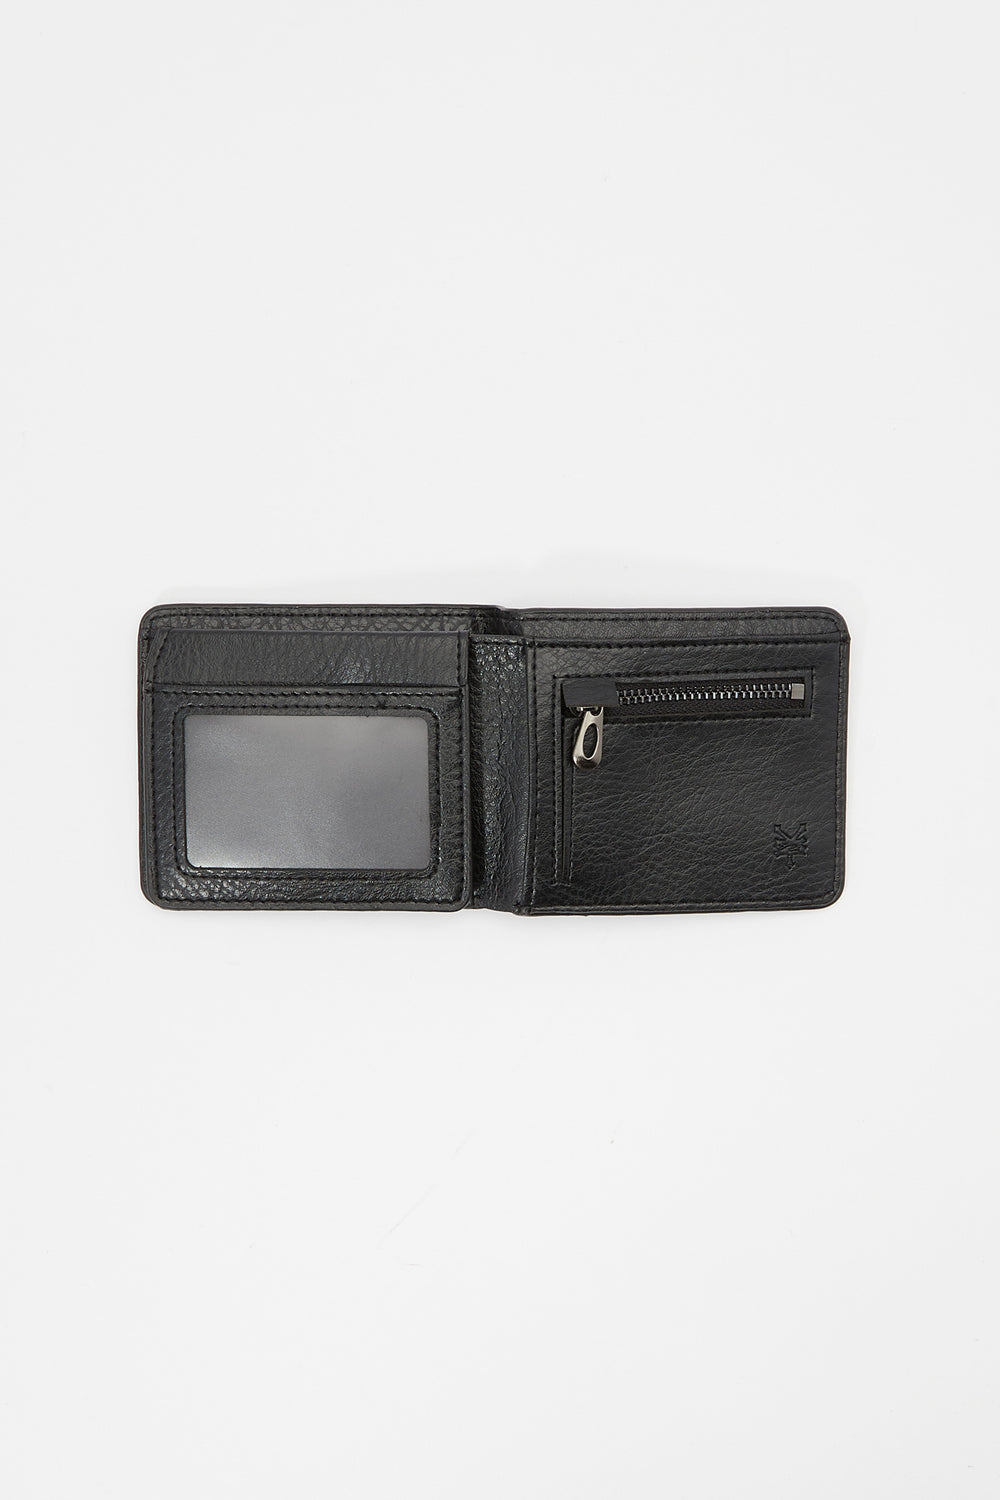 Zoo York Mens Faux Leather Wallet Black